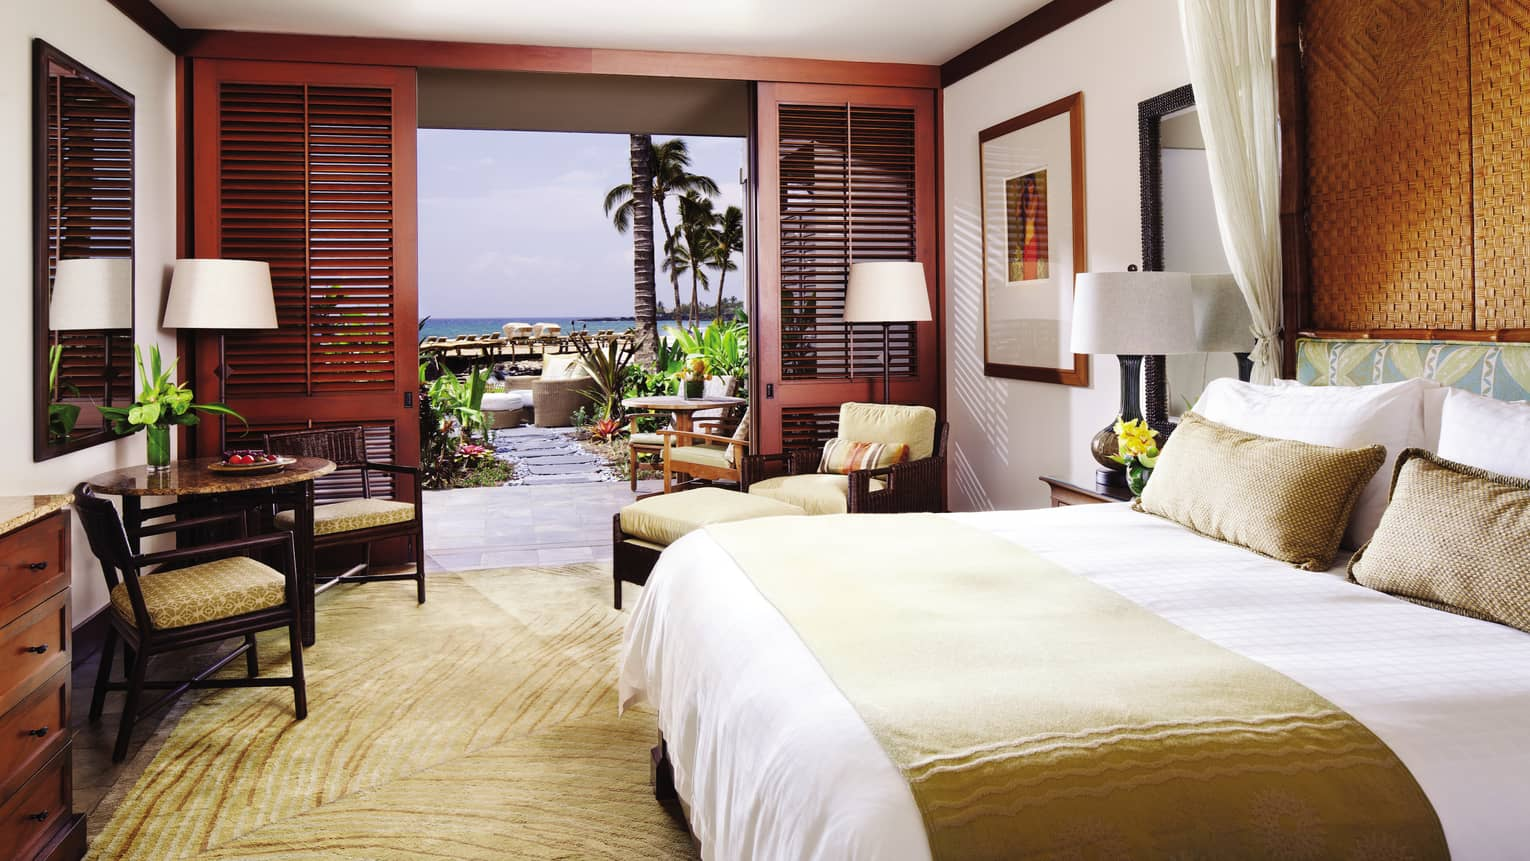 Ocean-View Deluxe Room bed with gold silk sash, pillows, gold chairs by wood patio shutters